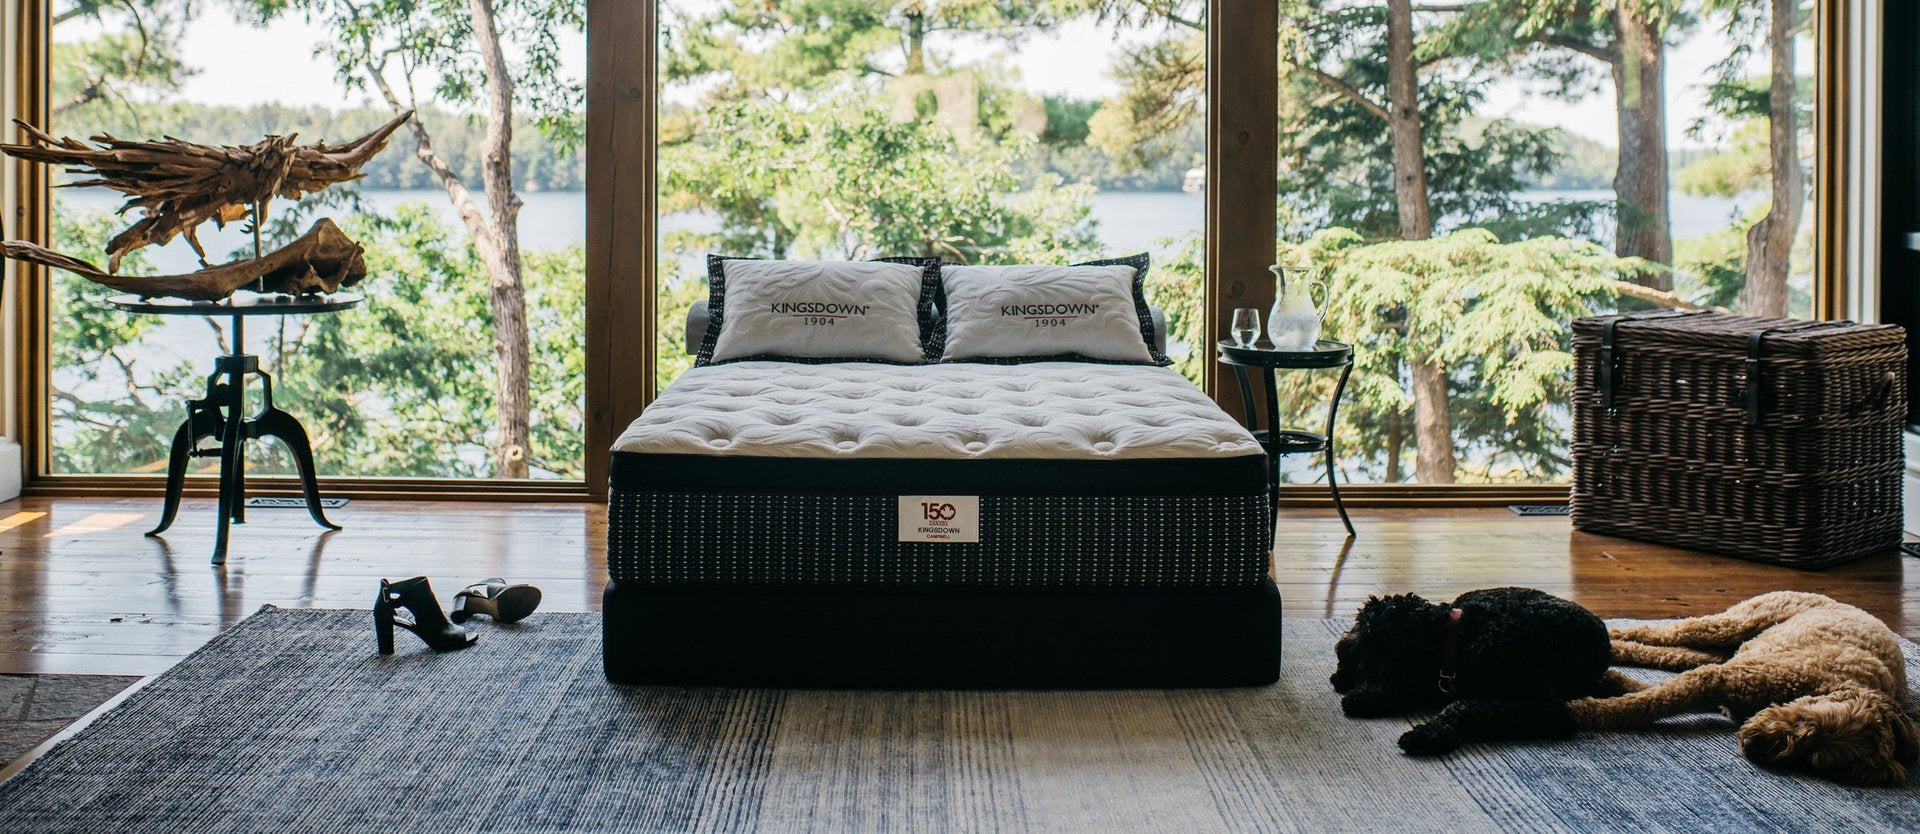 Simmons and Serta mattresses at unheard of prices